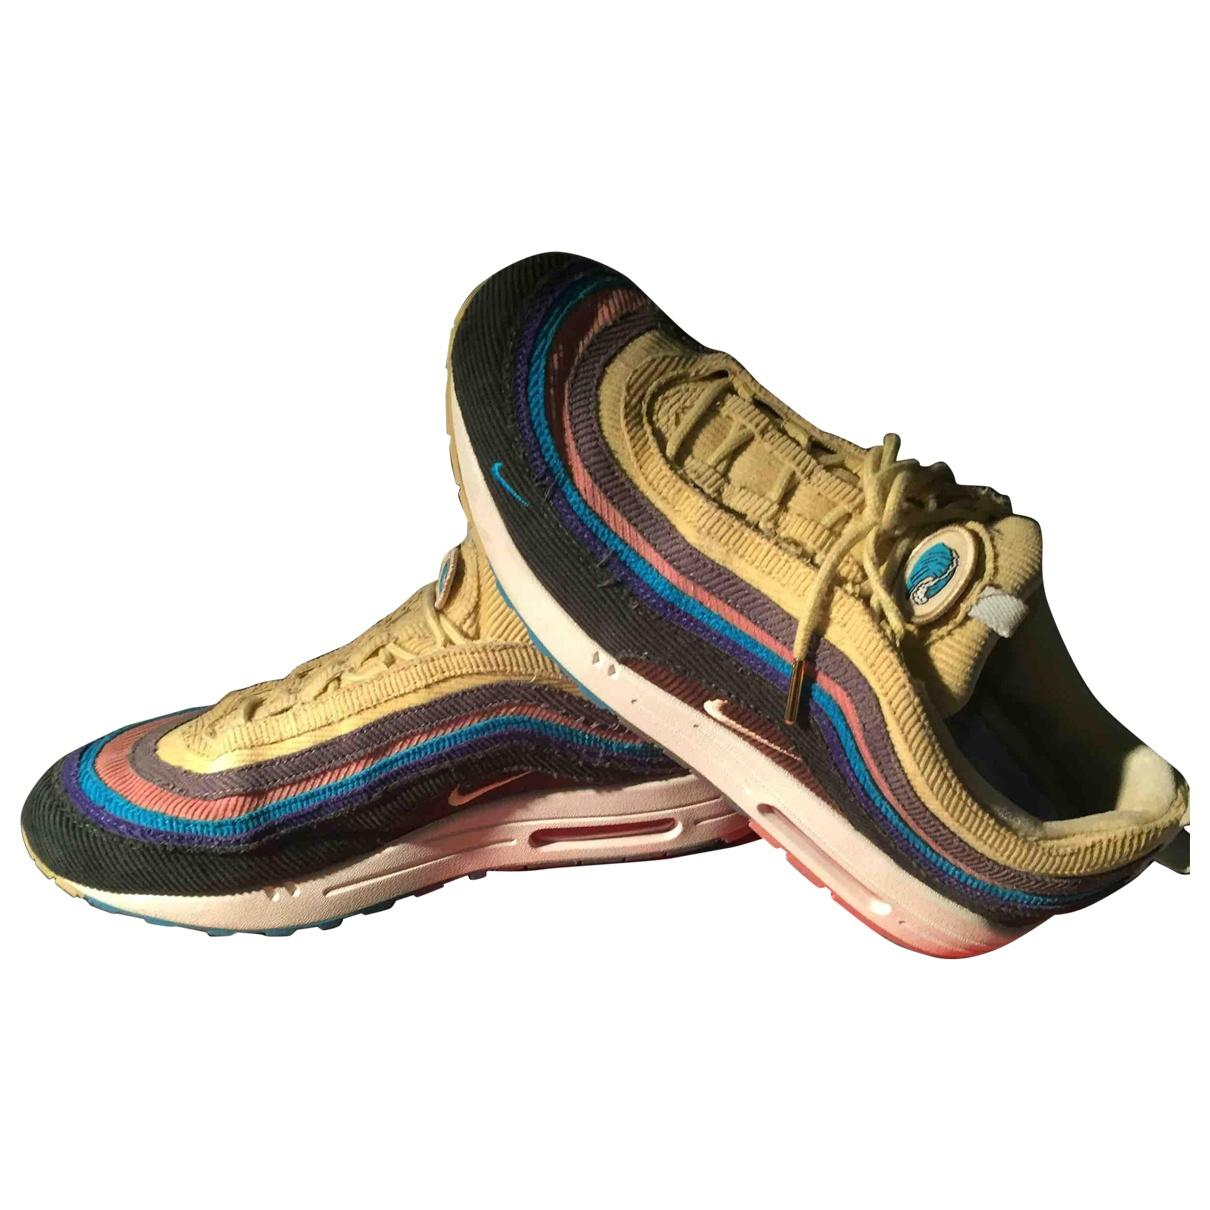 c0a6b6b276 Nike Air Max 1/97 Sean Wotherspoon Cloth Low Trainers for Men - Lyst